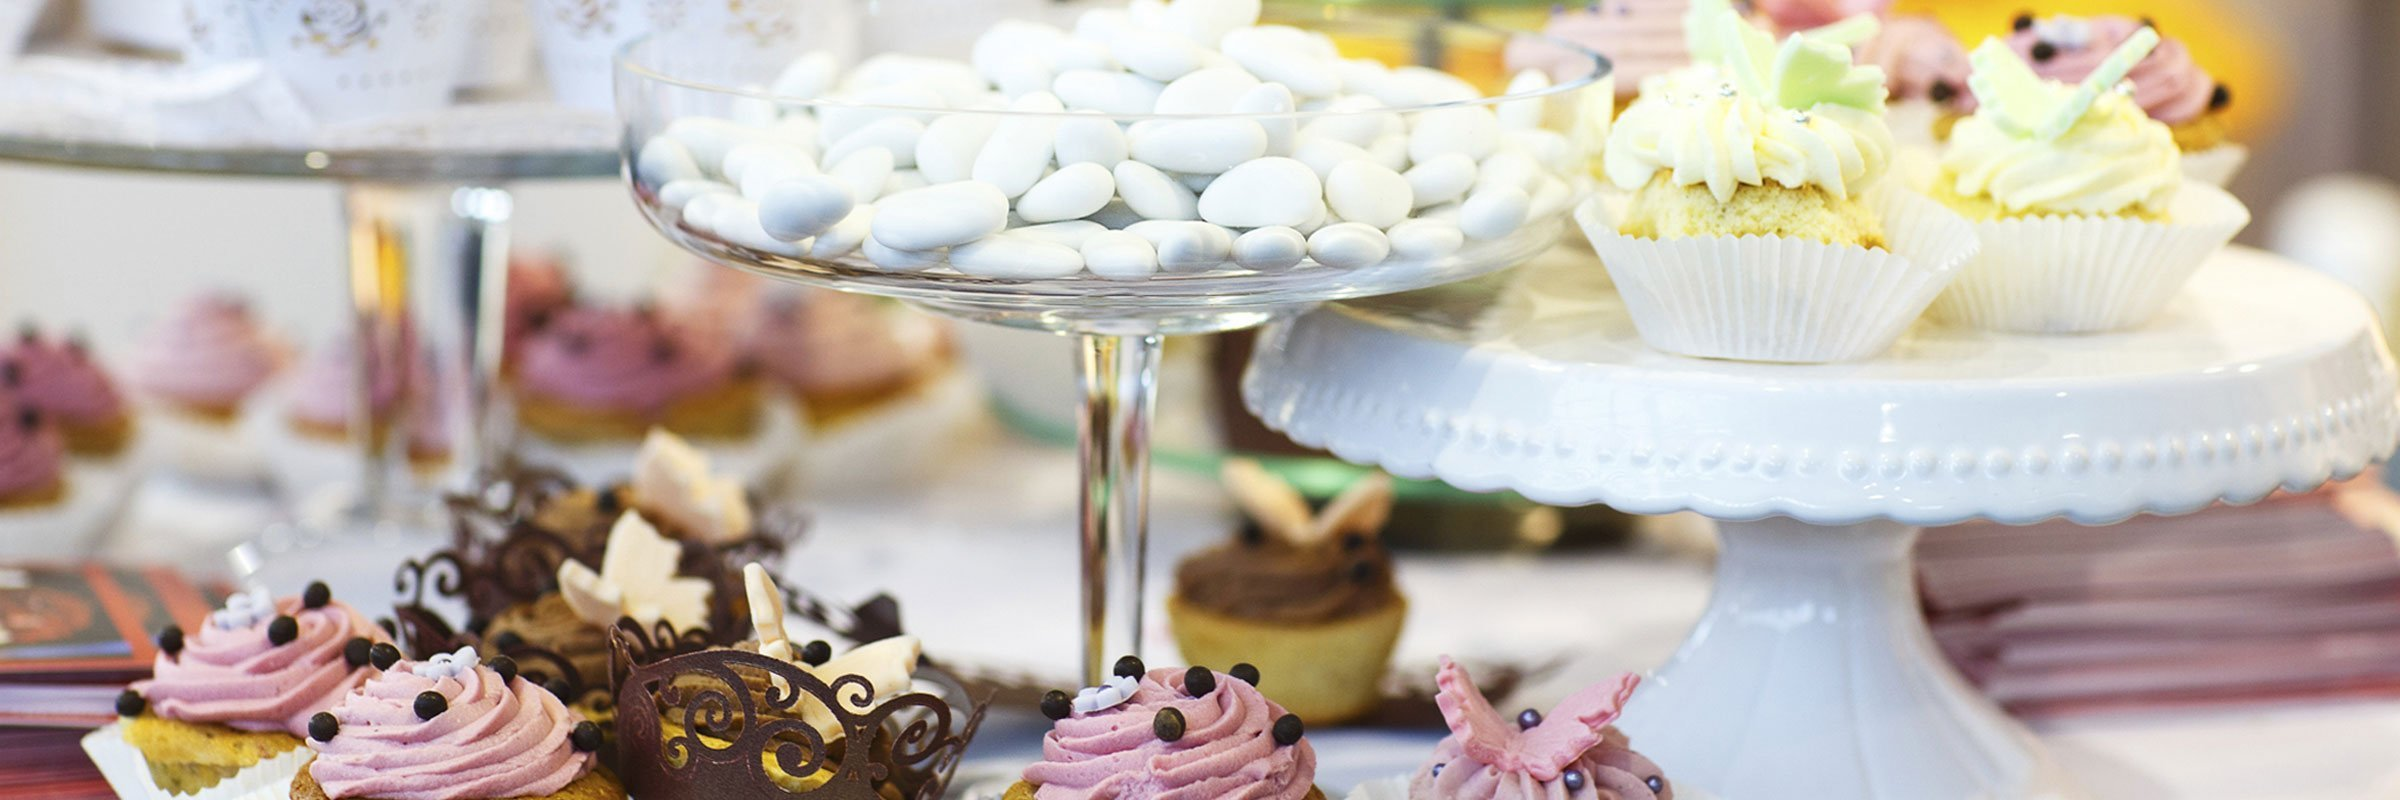 temptations catering pasteries arranged neatly in a table